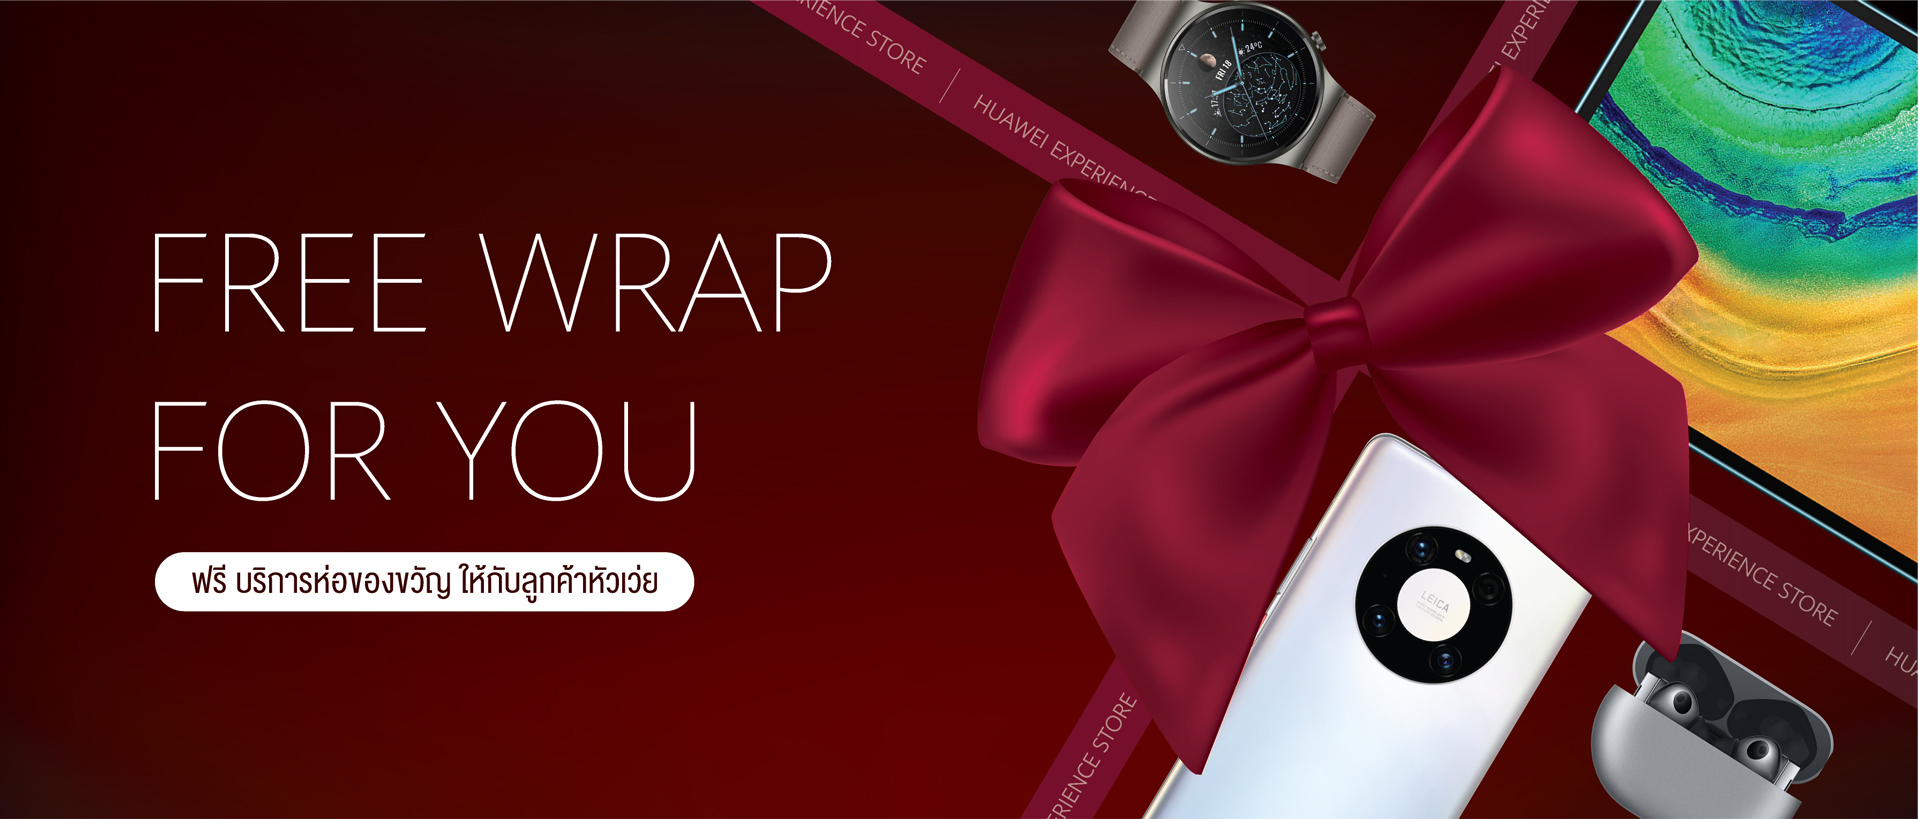 Grand opening campaign FREE WRAP FOR YOU